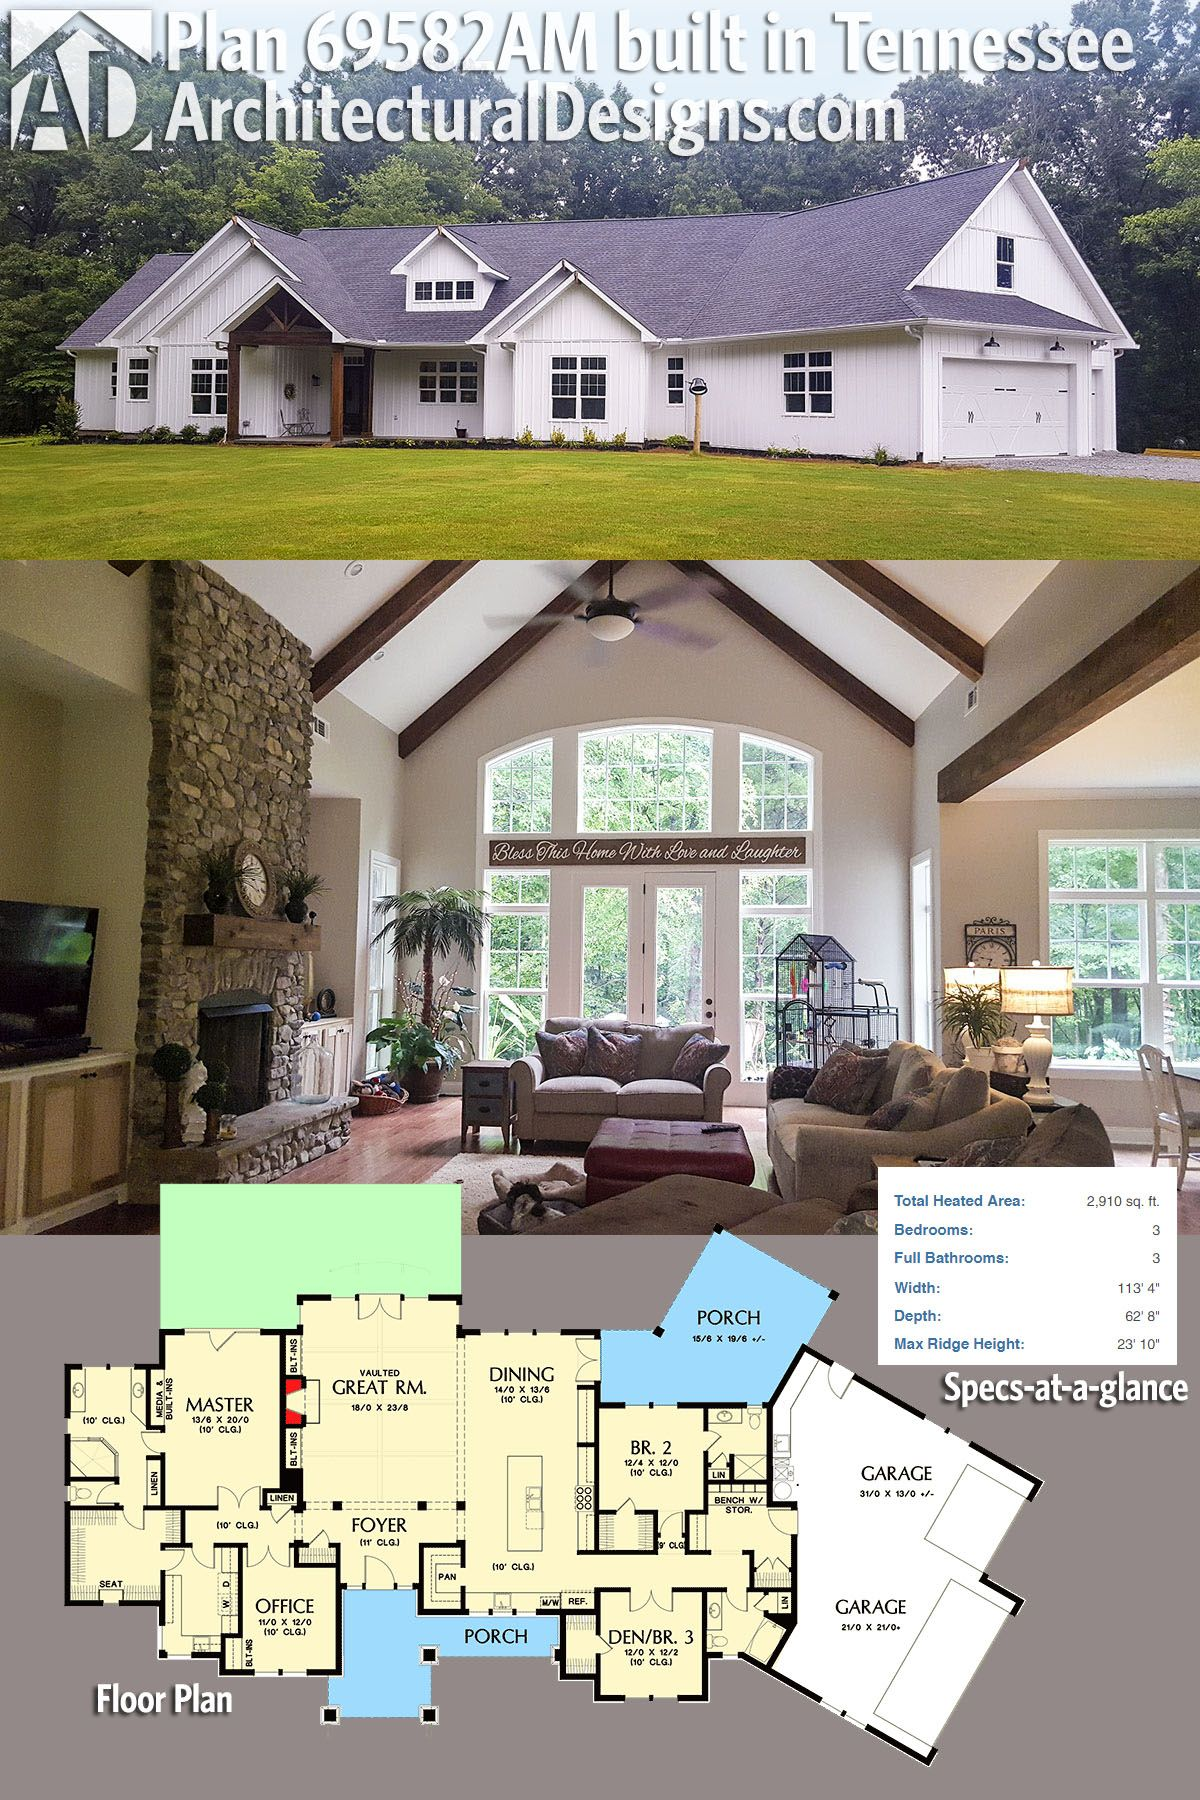 Our Client Built Architectural Designs House Plan 69582AM In Tennessee With  Board And Batten Siding Giving